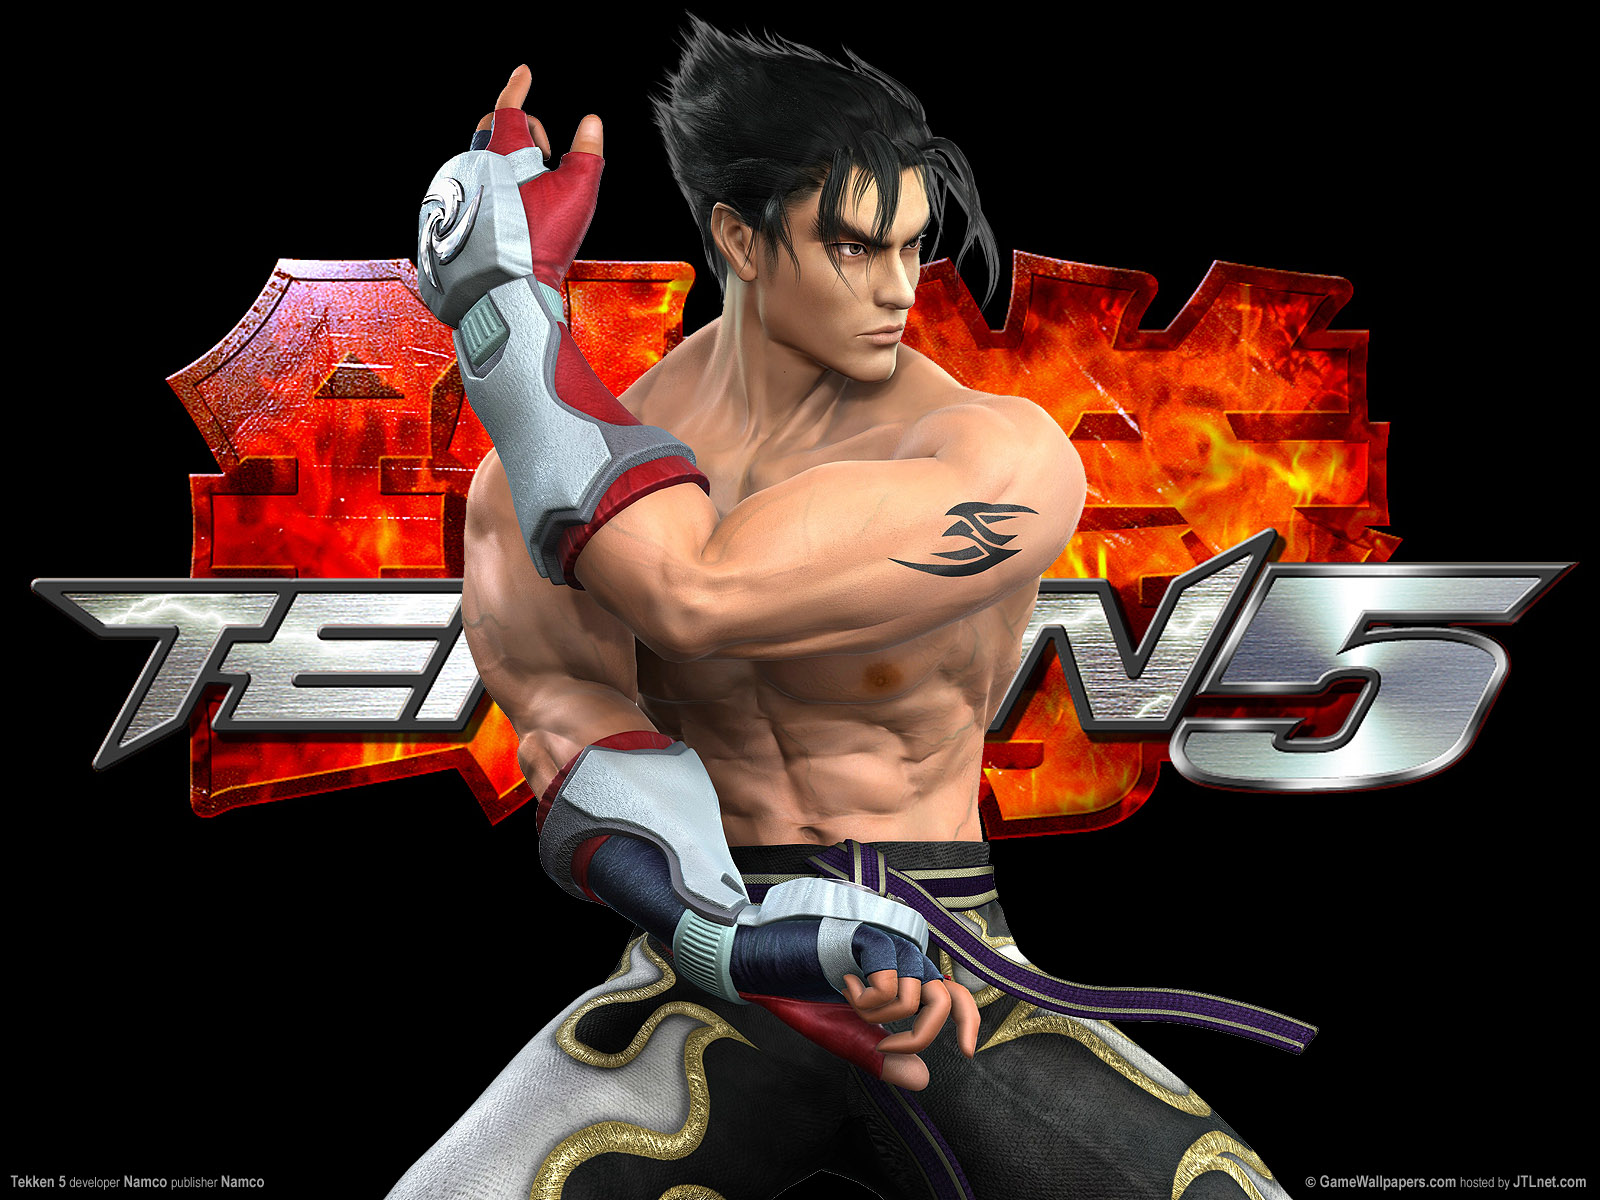 Tekken 5 Is Credited For Taking The Series Back To Its Roots It Incorporates A Faster More Fluid Fighting System Improved Graphics Returning Characters